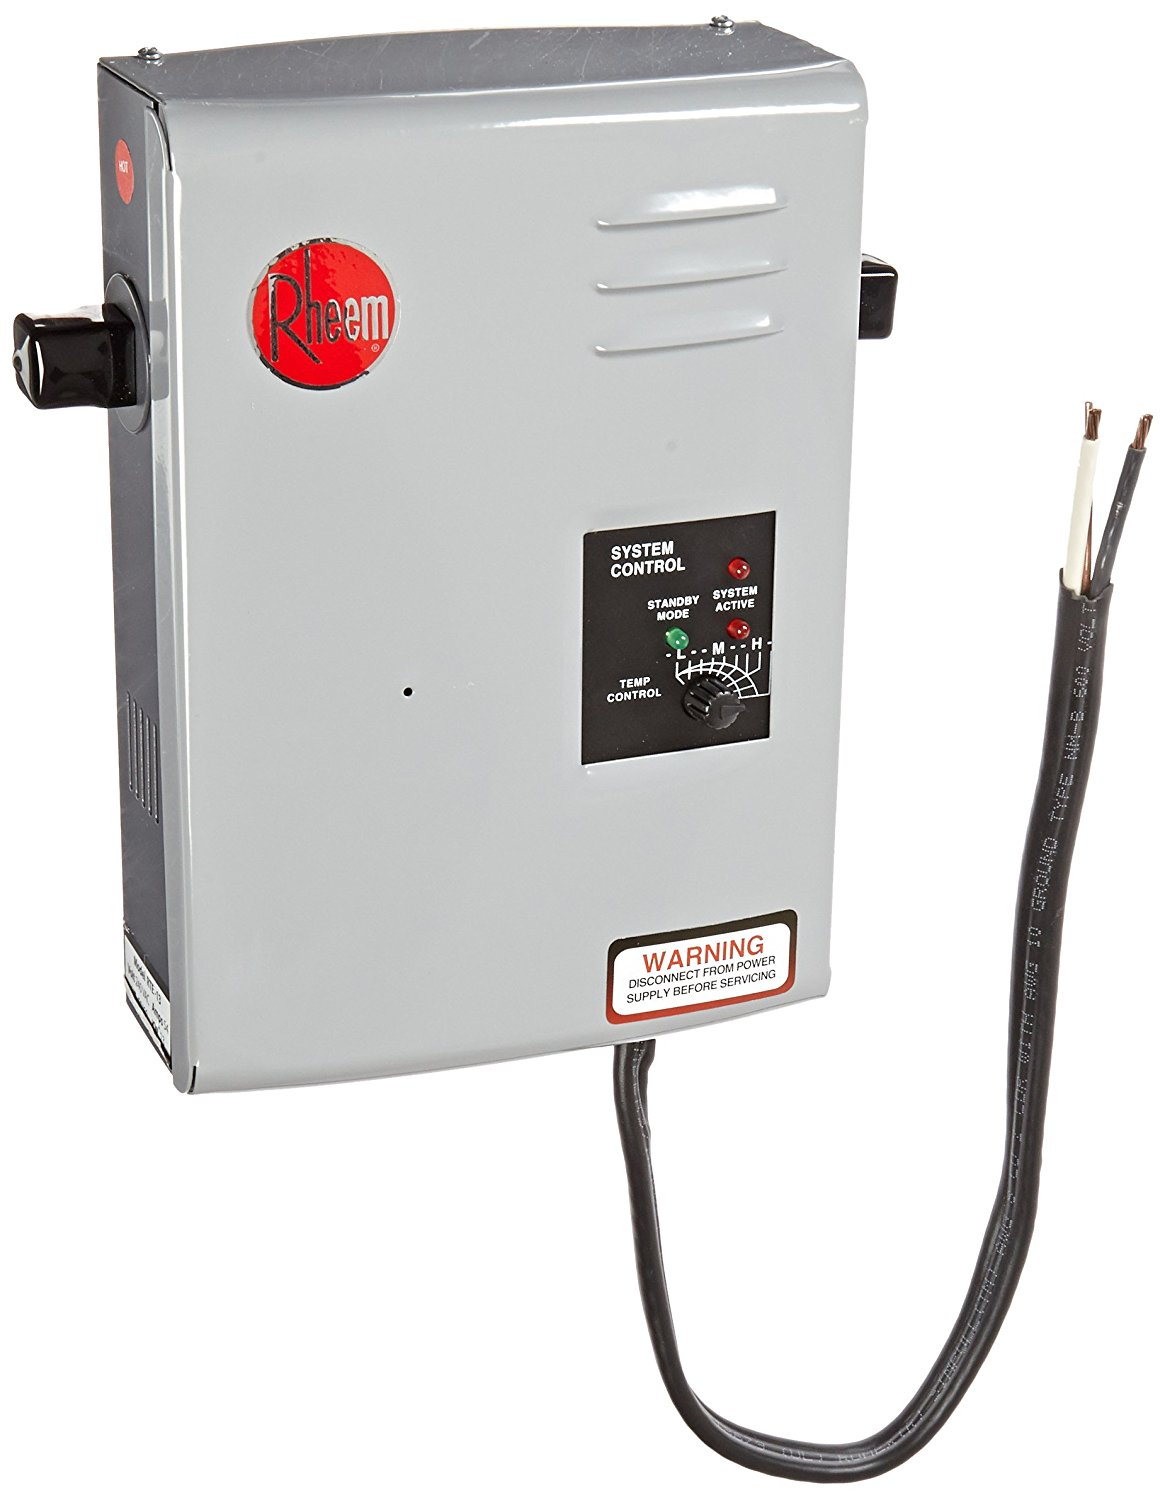 Pros and cons of gas tankless water heaters - Rheem Rte 13 Electric Tankless Water Heater 4 Gpm